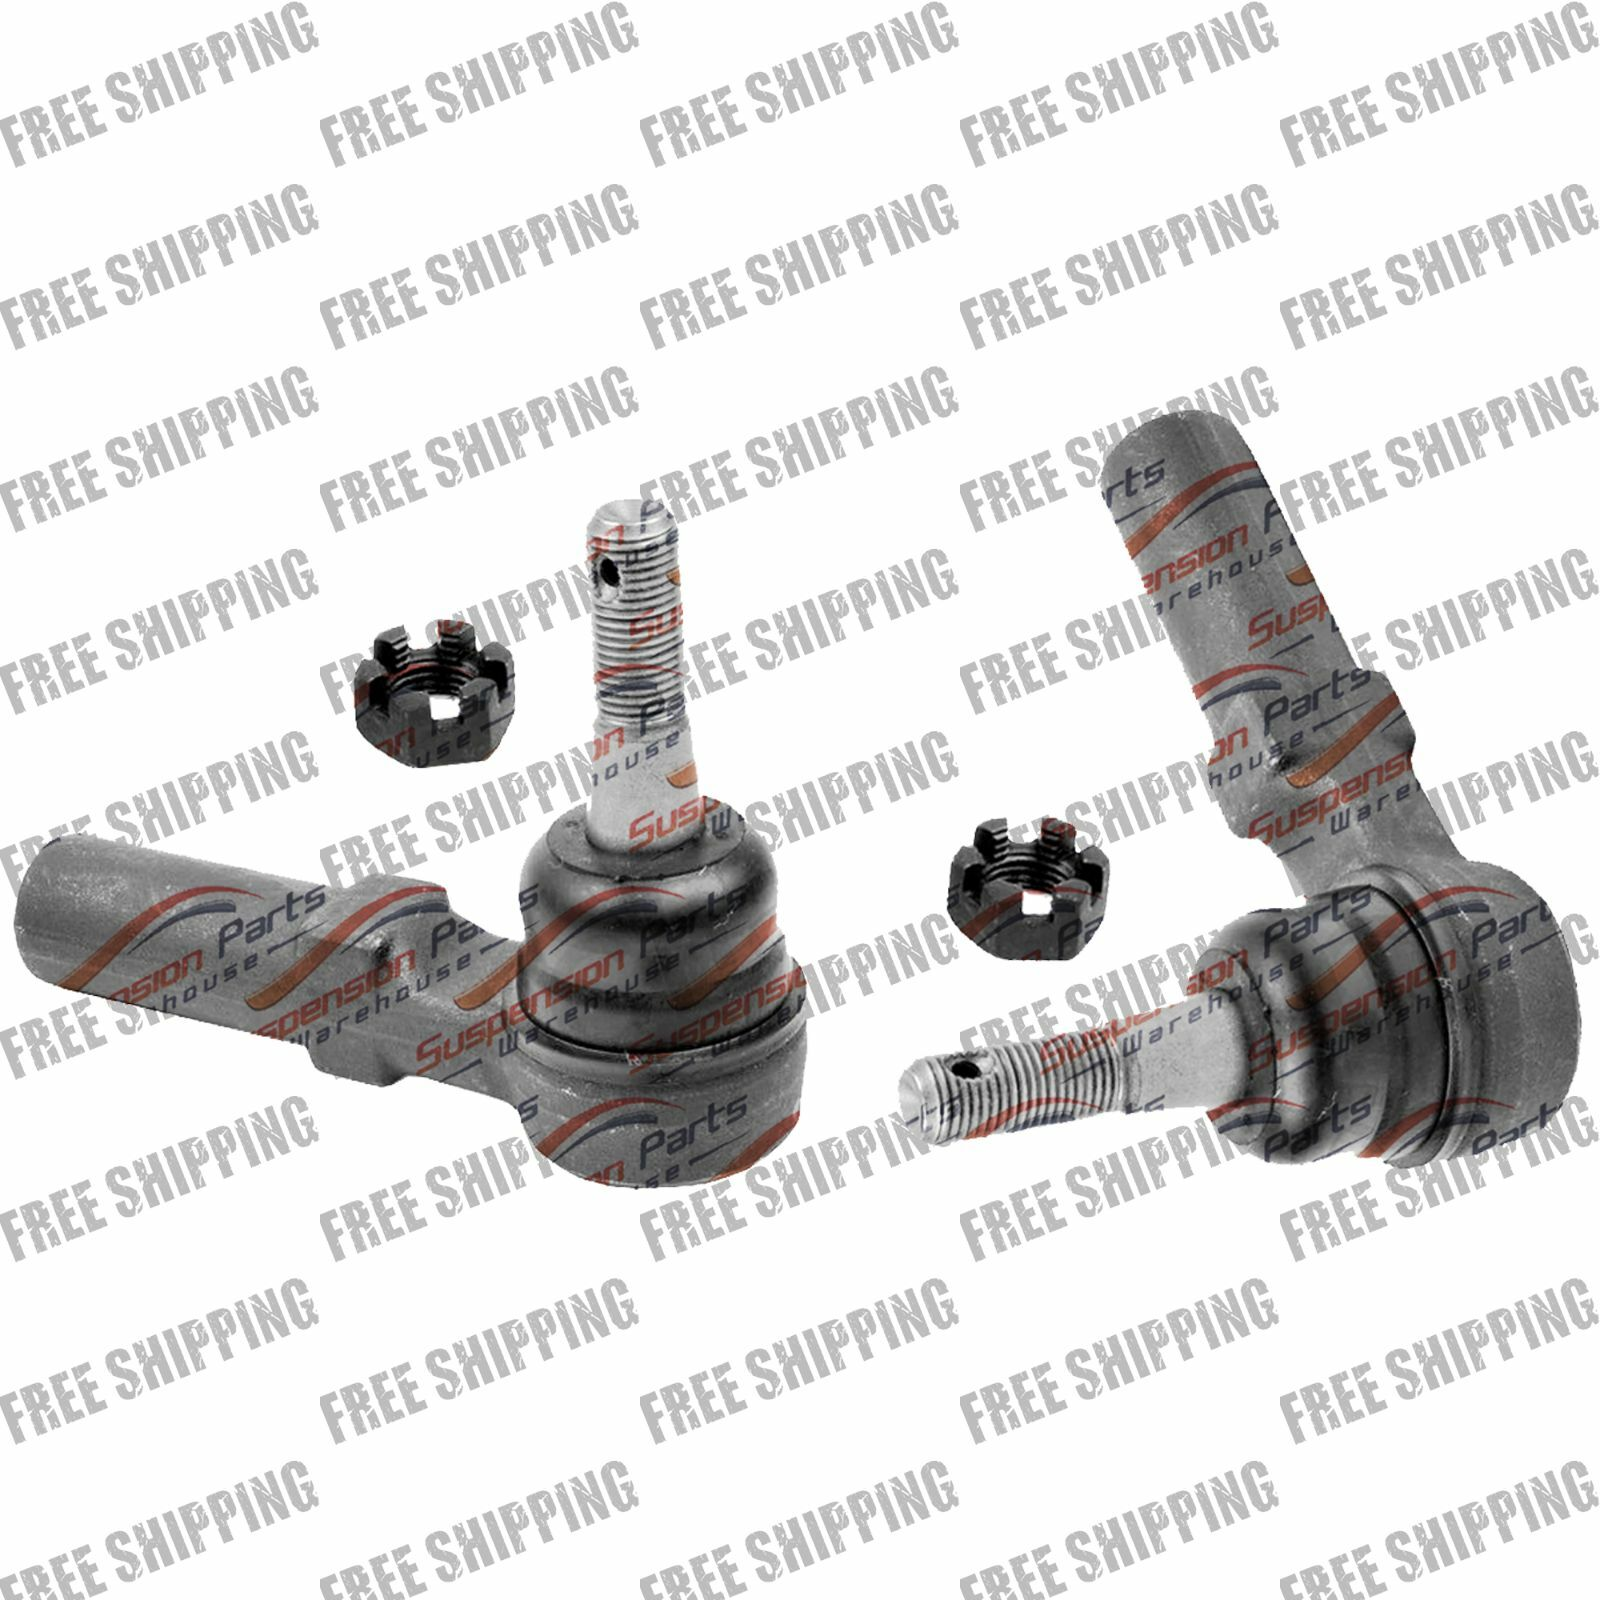 2 Outer Tie Rods Steering Chassis Part Kit For Buick